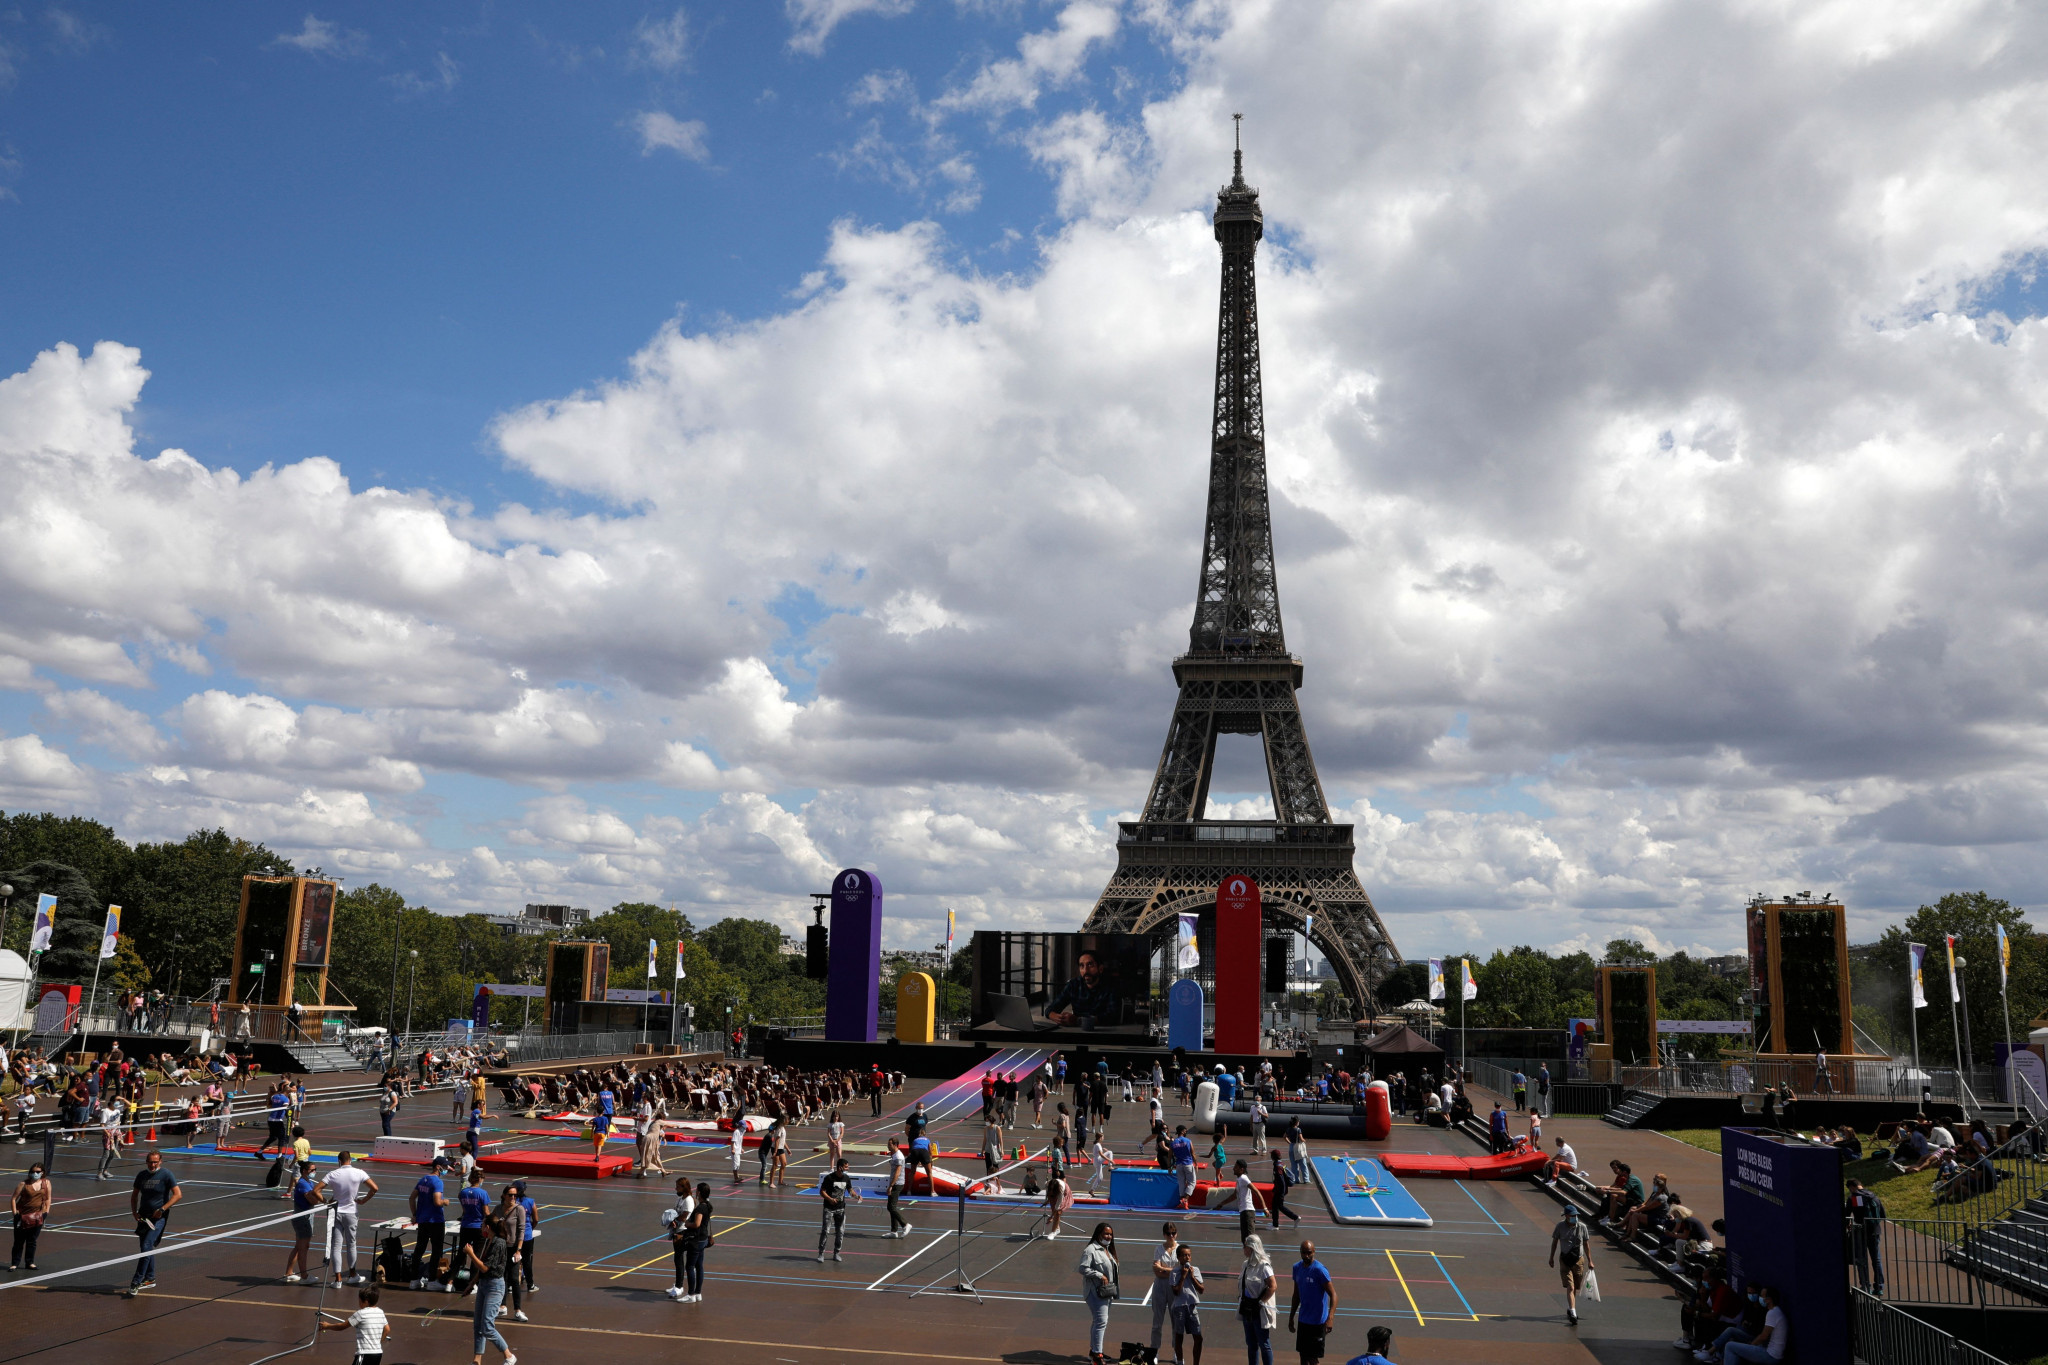 A giant flag will be flown from the Eiffel Tower as part of the handover ceremony ©Getty Images